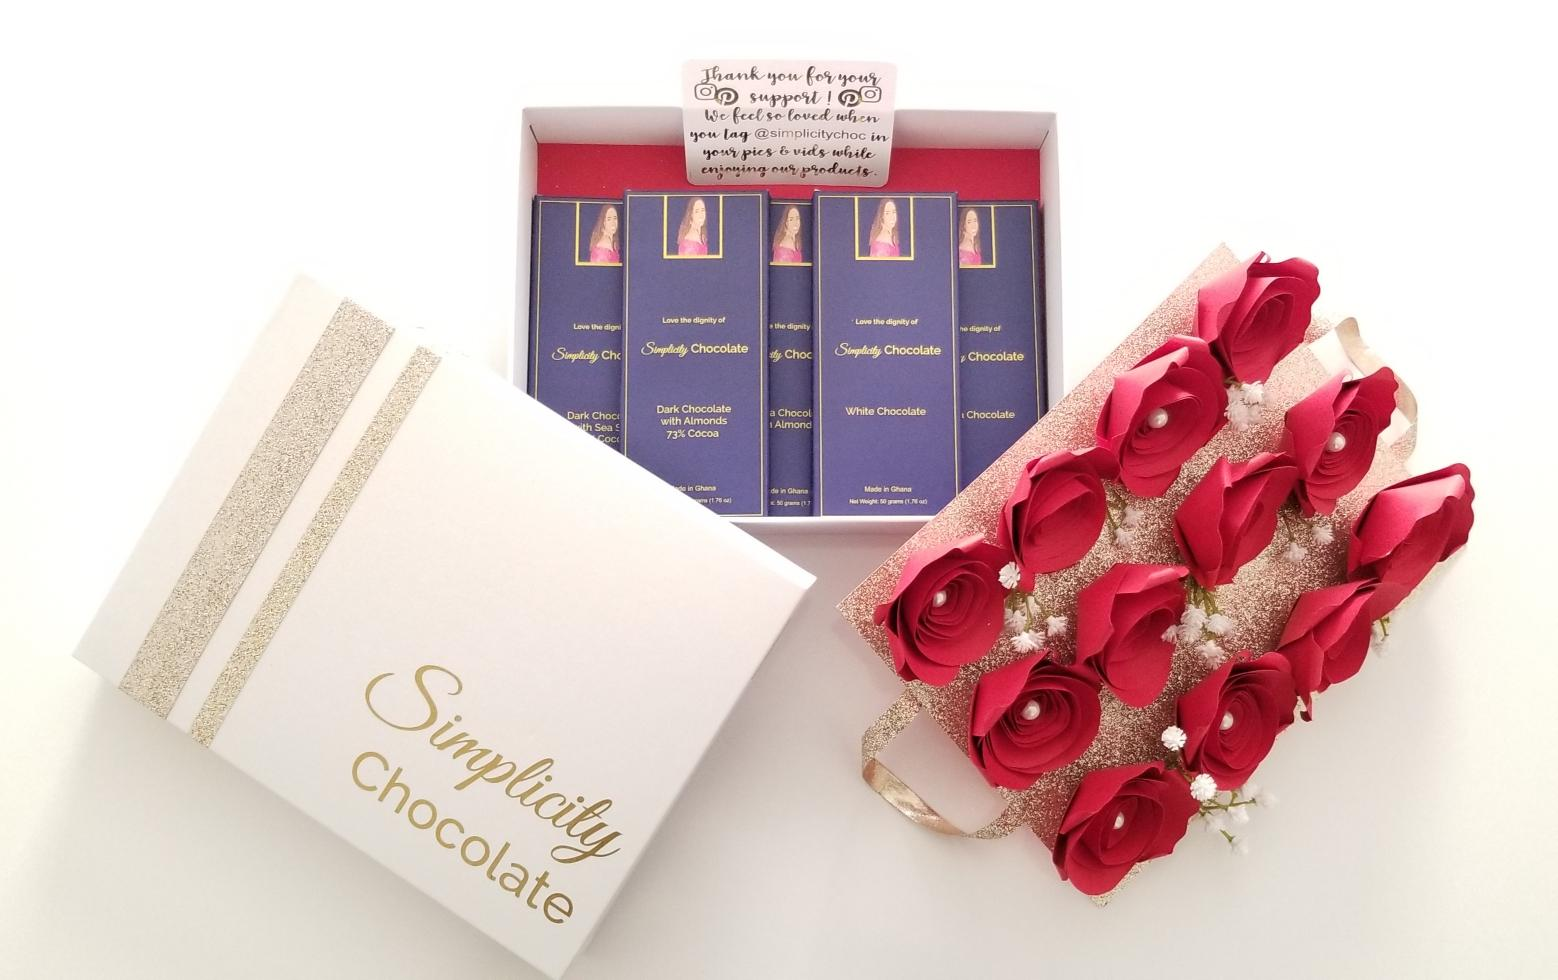 The Simplicity Chocolate Nostalgia Box is seen here as a white box with gold accents. The Simplicity Chocolate signature logo adorns the lid in gold print. A layer of one dozen red, paper roses sits atop a gold platform with handles that when lifted reveal the five gourmet Simplicity Chocolate flavor offerings nestled in the keepsake storage portion of the box.